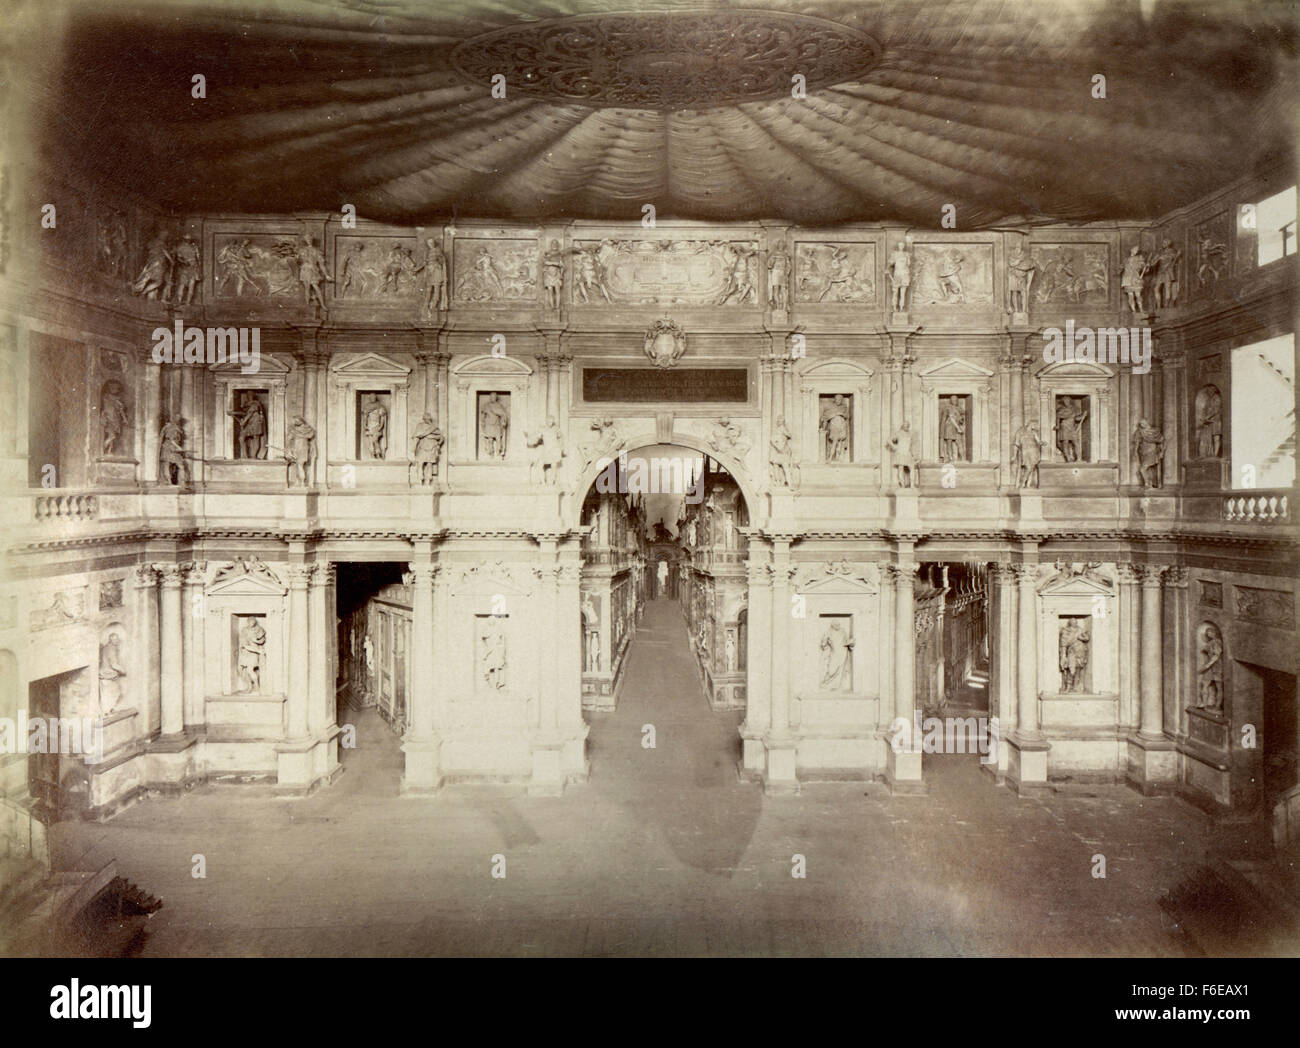 Interior façade of the Olympic theater, Vicenza, Italy - Stock Image